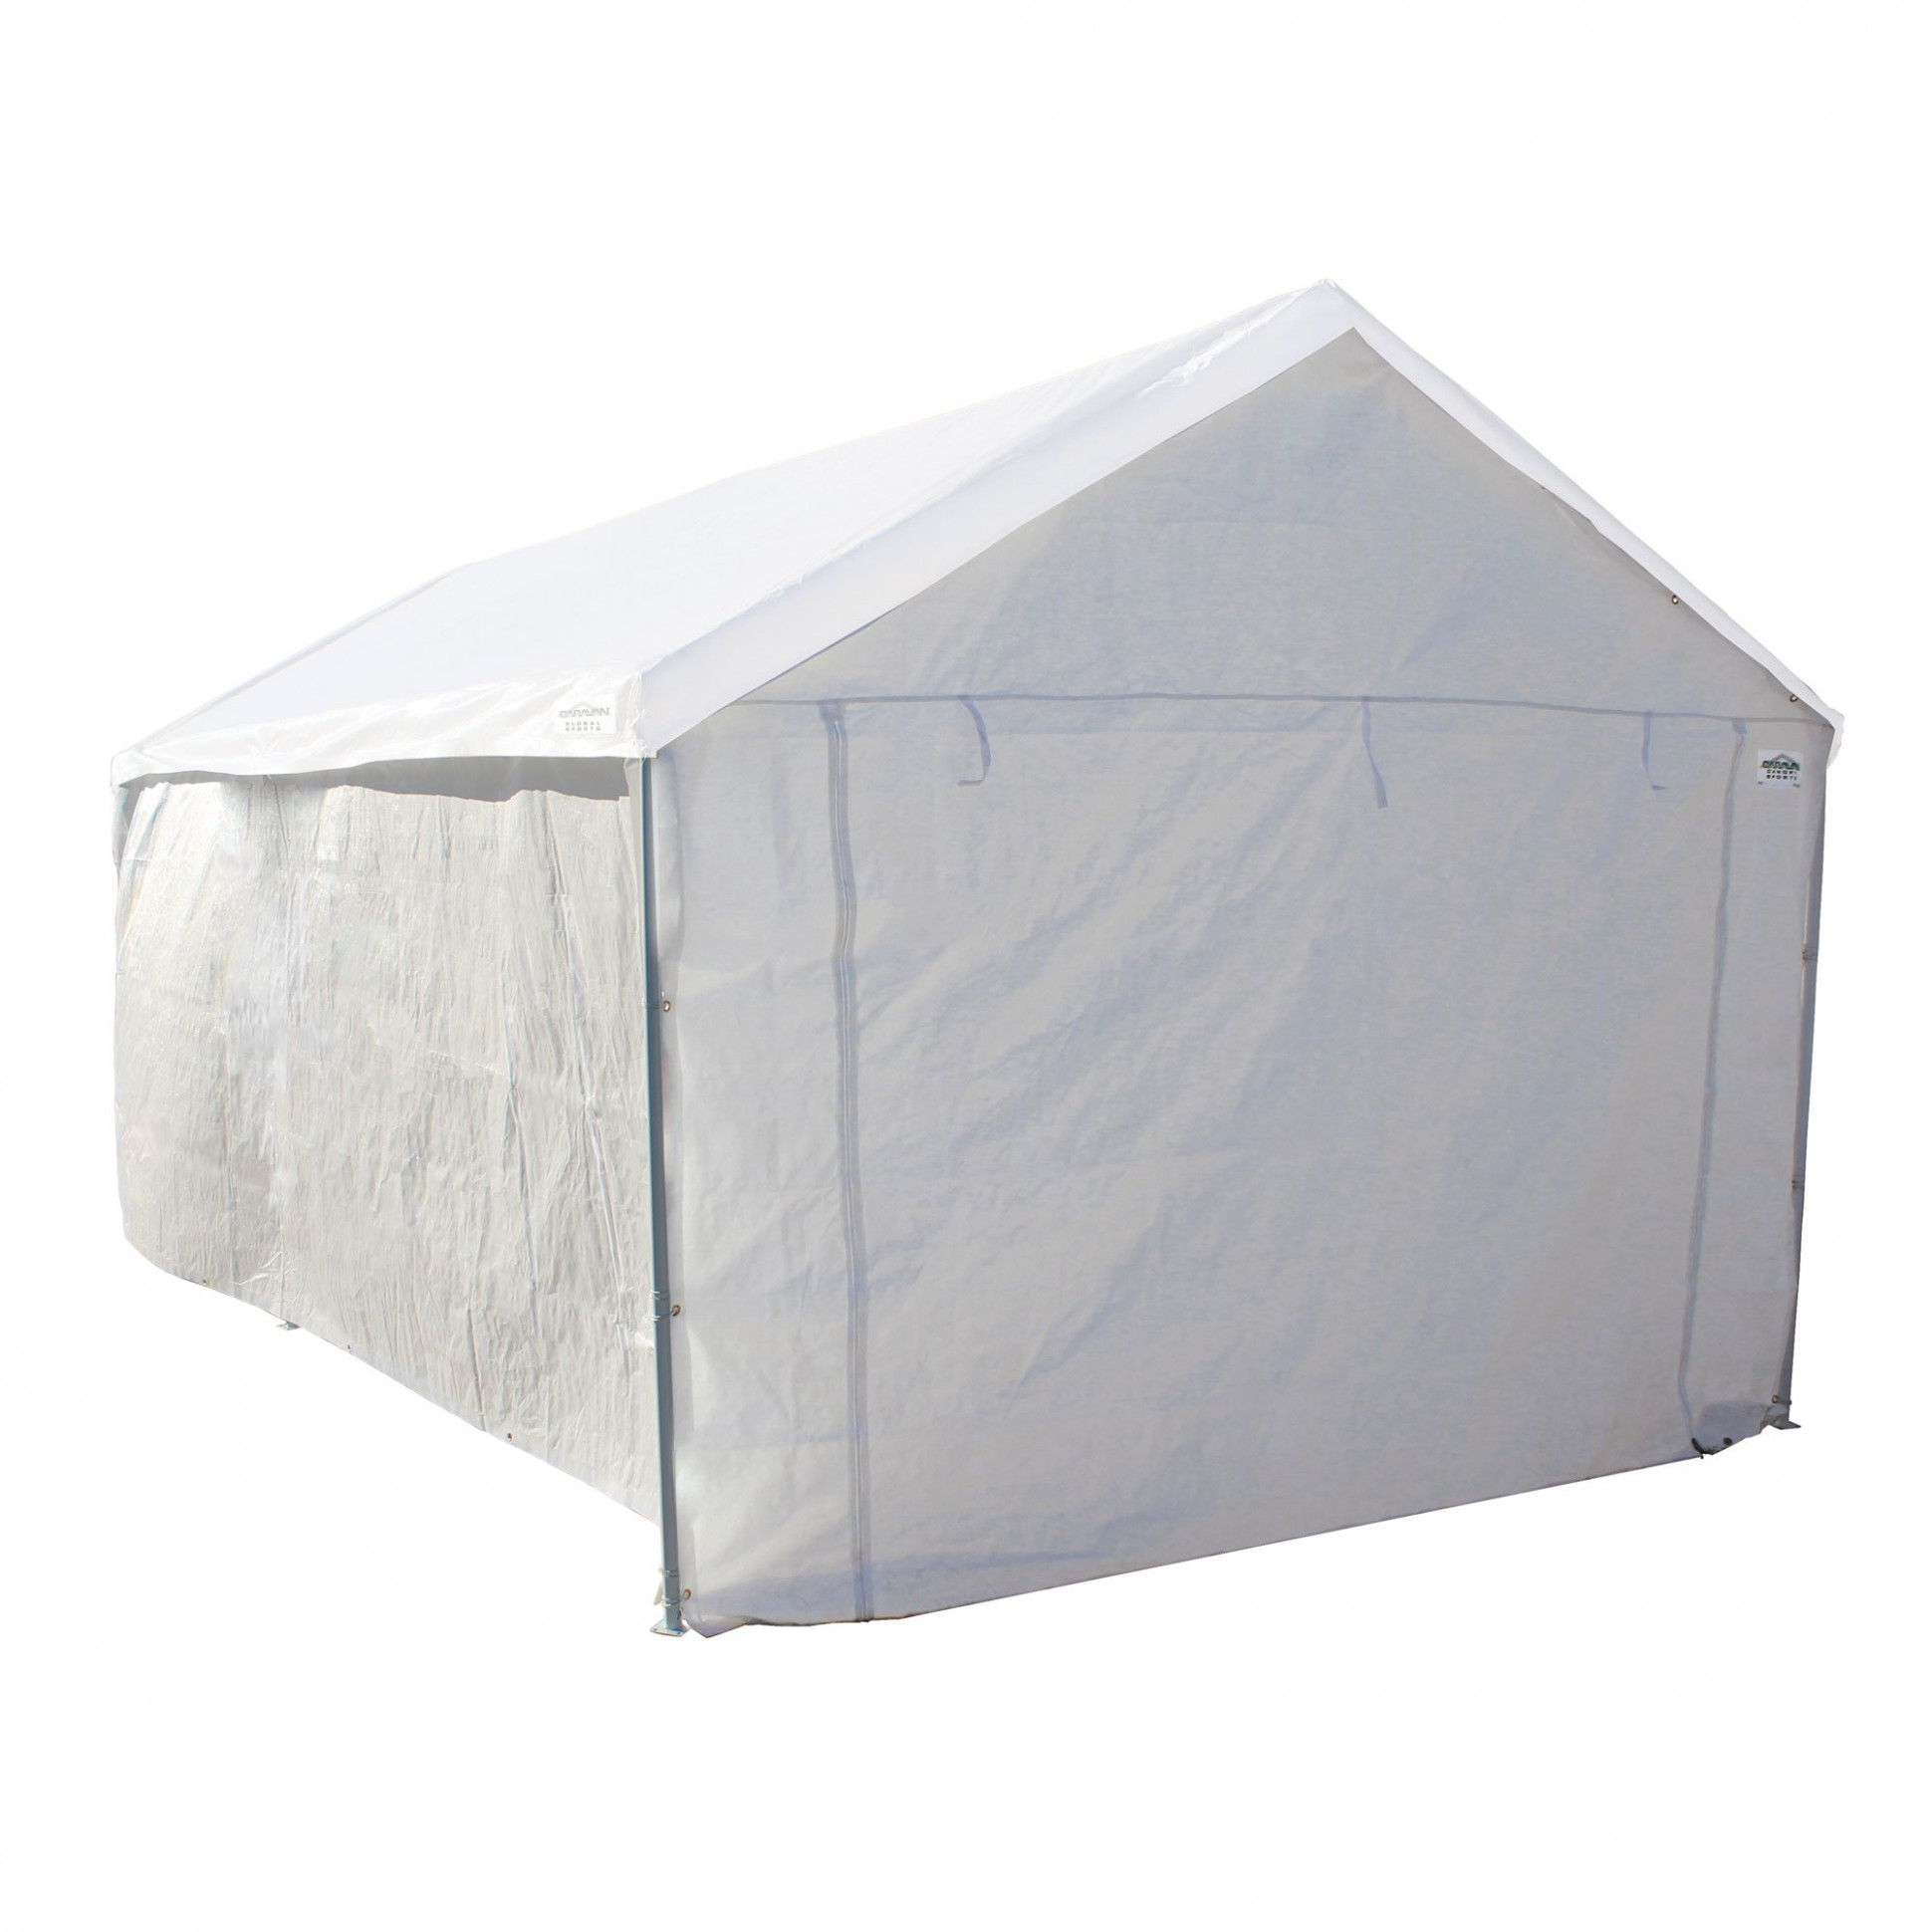 Caravan Canopy Sports 10'x10′ Domain Carport Garage Sidewall/Enclosure Kit (Frame And Top Not Included) Walmart